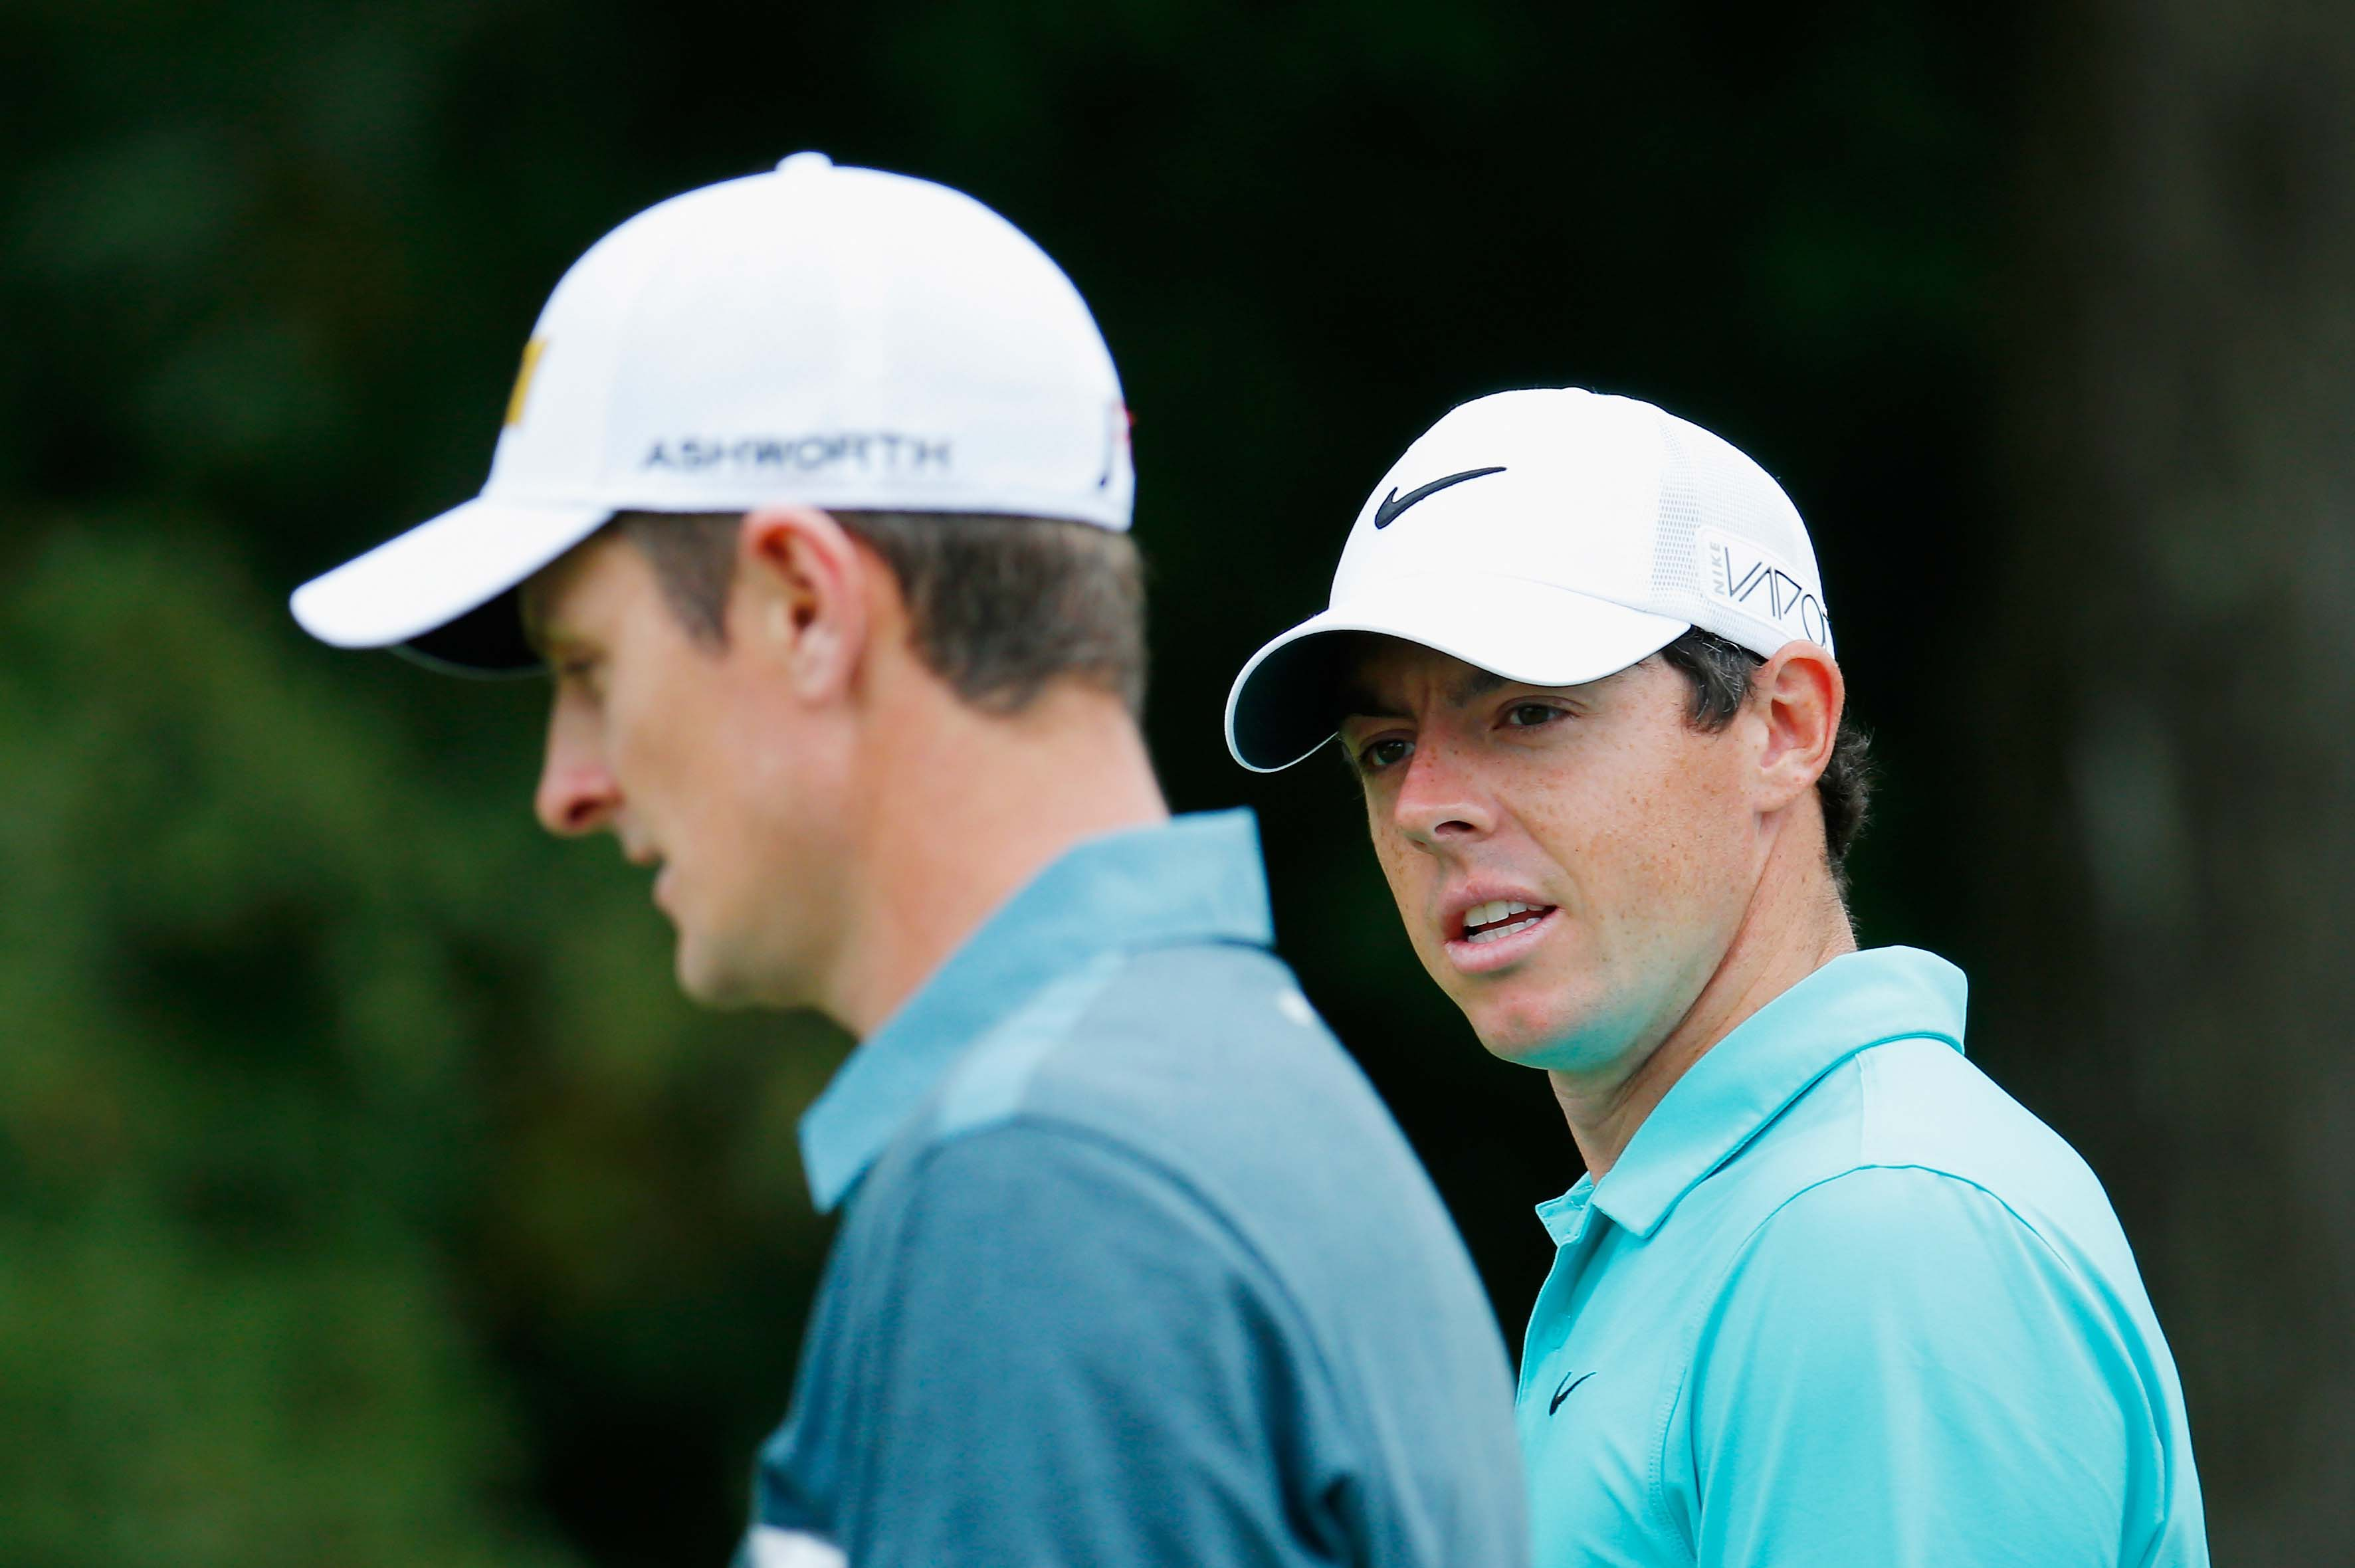 Justin Rose and Rory McIlroy